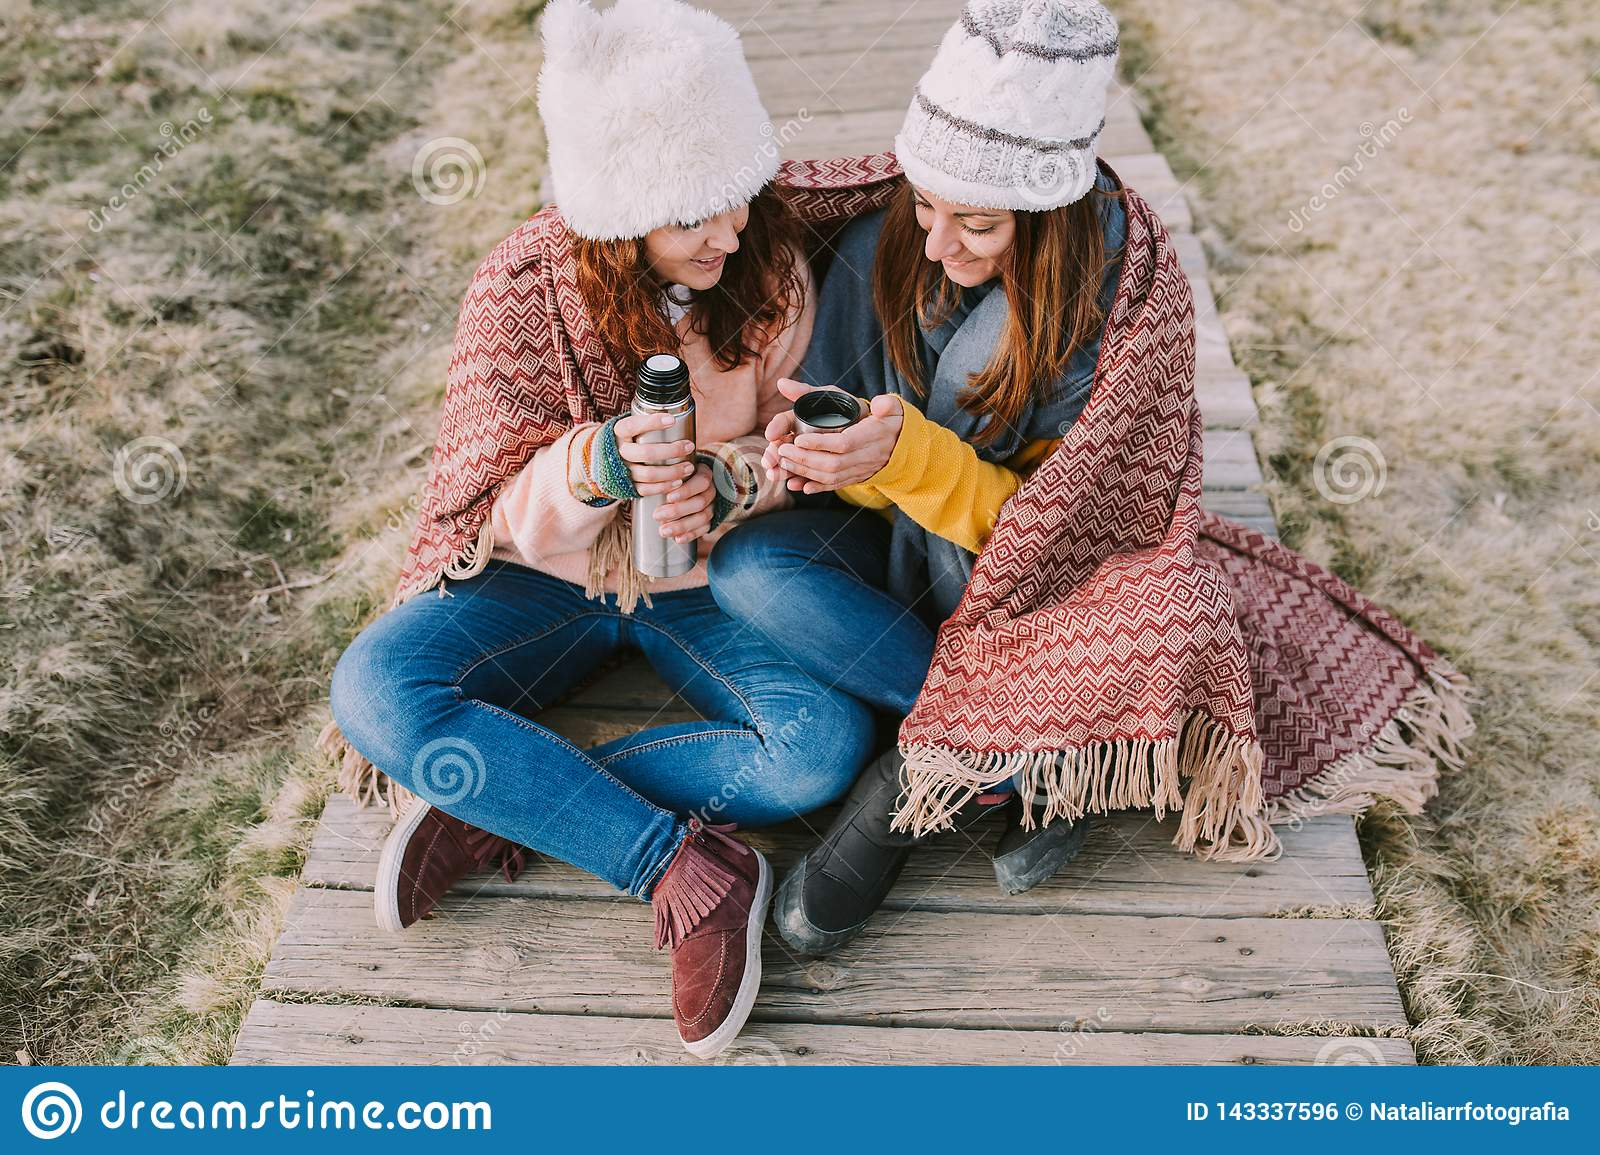 Two friends wrapped in a blanket are sitting in the meadow while they take out a thermos to prepare a broth